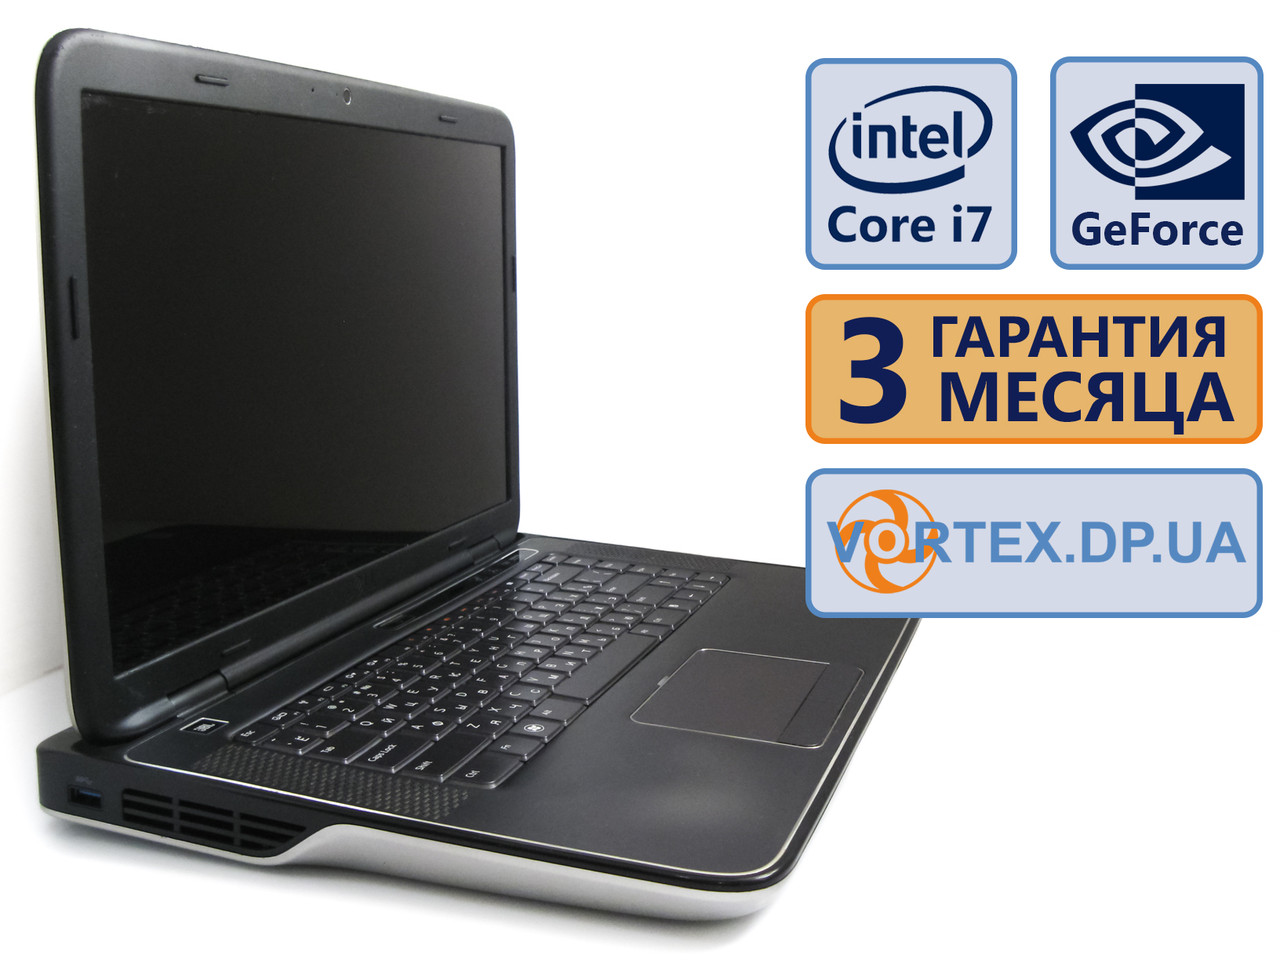 Ноутбук Dell XPS L501X 15.6 (1366x768) / Intel Core i7-740QM (4x1.73GH